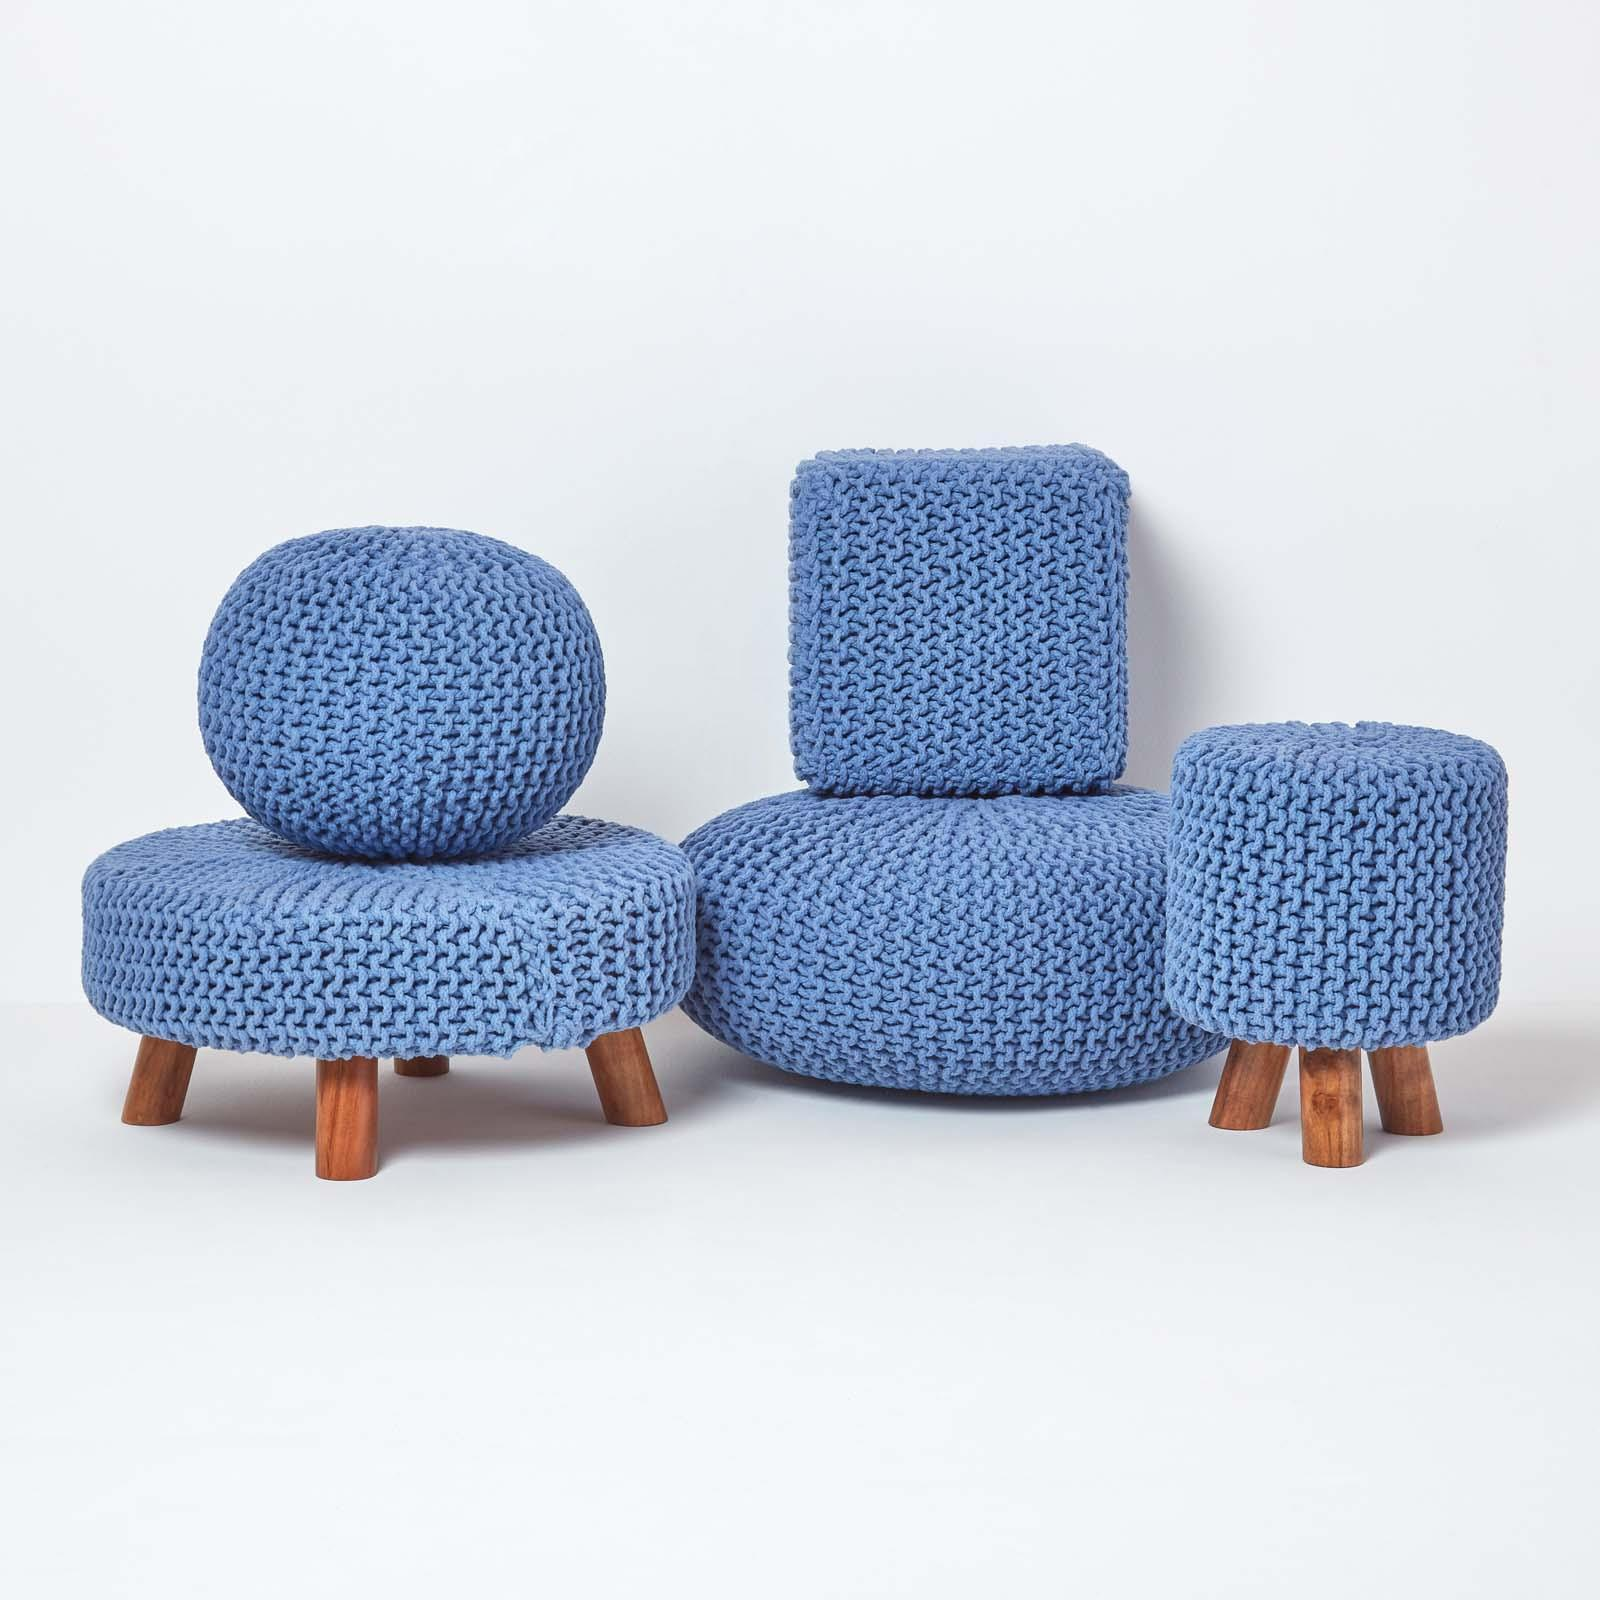 Hand-Knitted-100-Cotton-Pouffes-Round-Sphere-Or-Cube-Square-Chunky-Footstools thumbnail 20